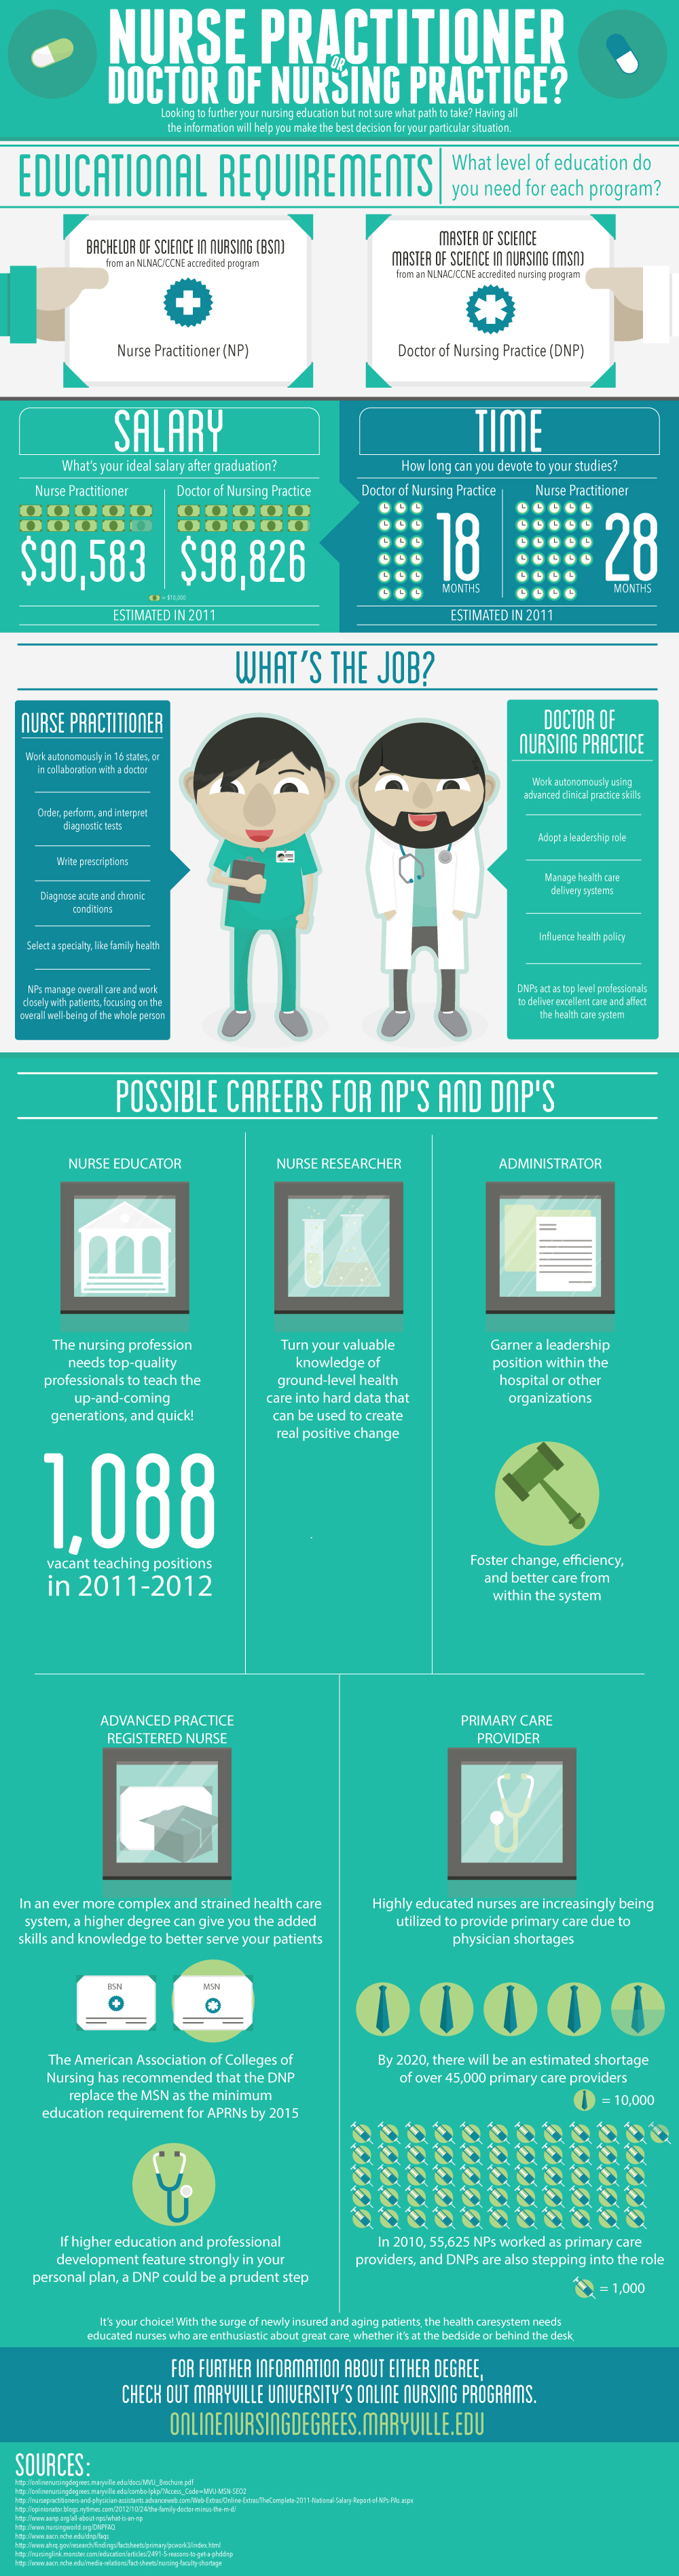 Nurse Practitioner or Doctor of Nursing Practice Infographic